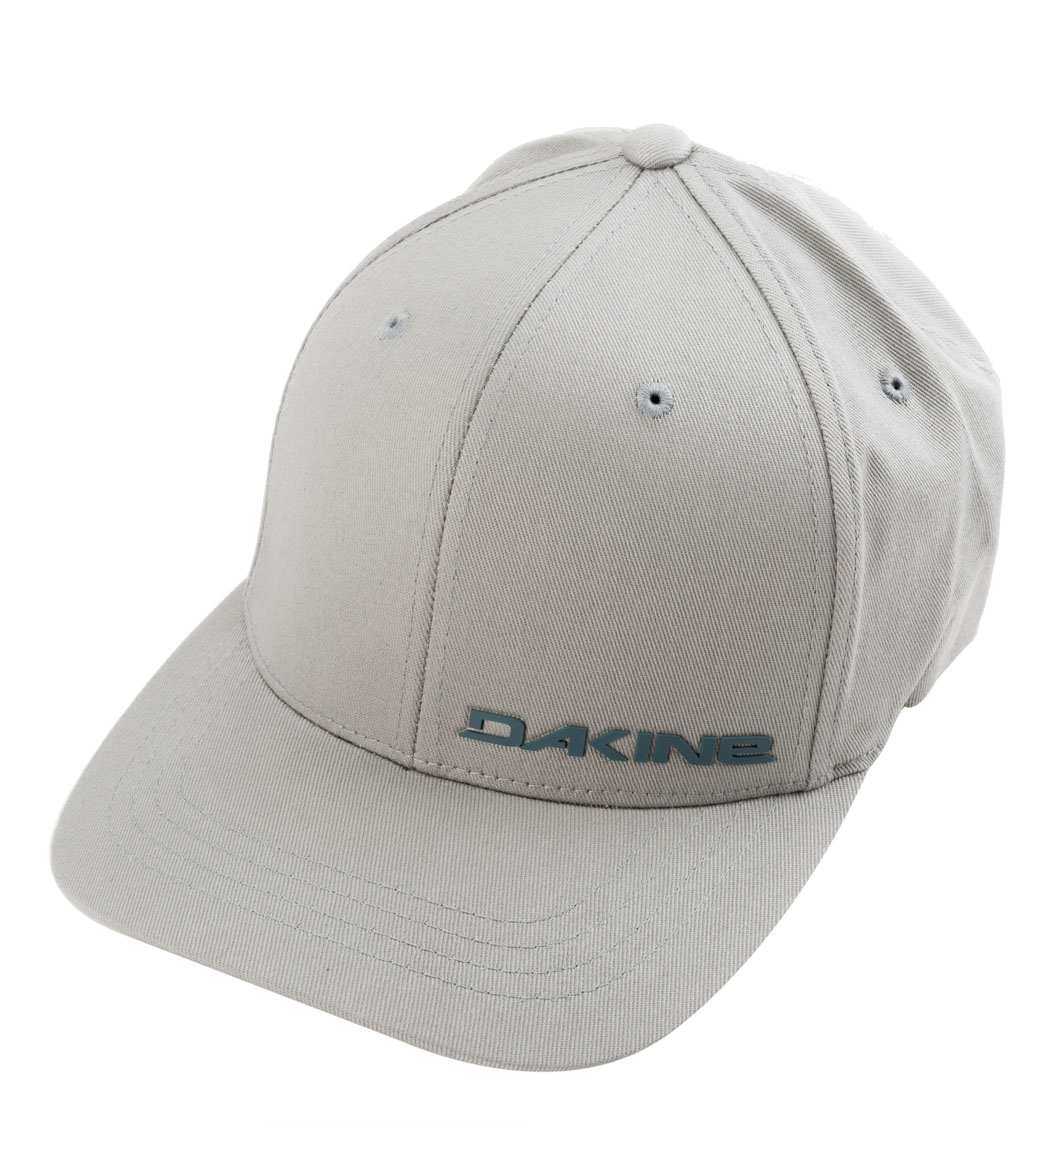 e06a2baed9e Dakine Men s Silicone Rail Hat at SwimOutlet.com